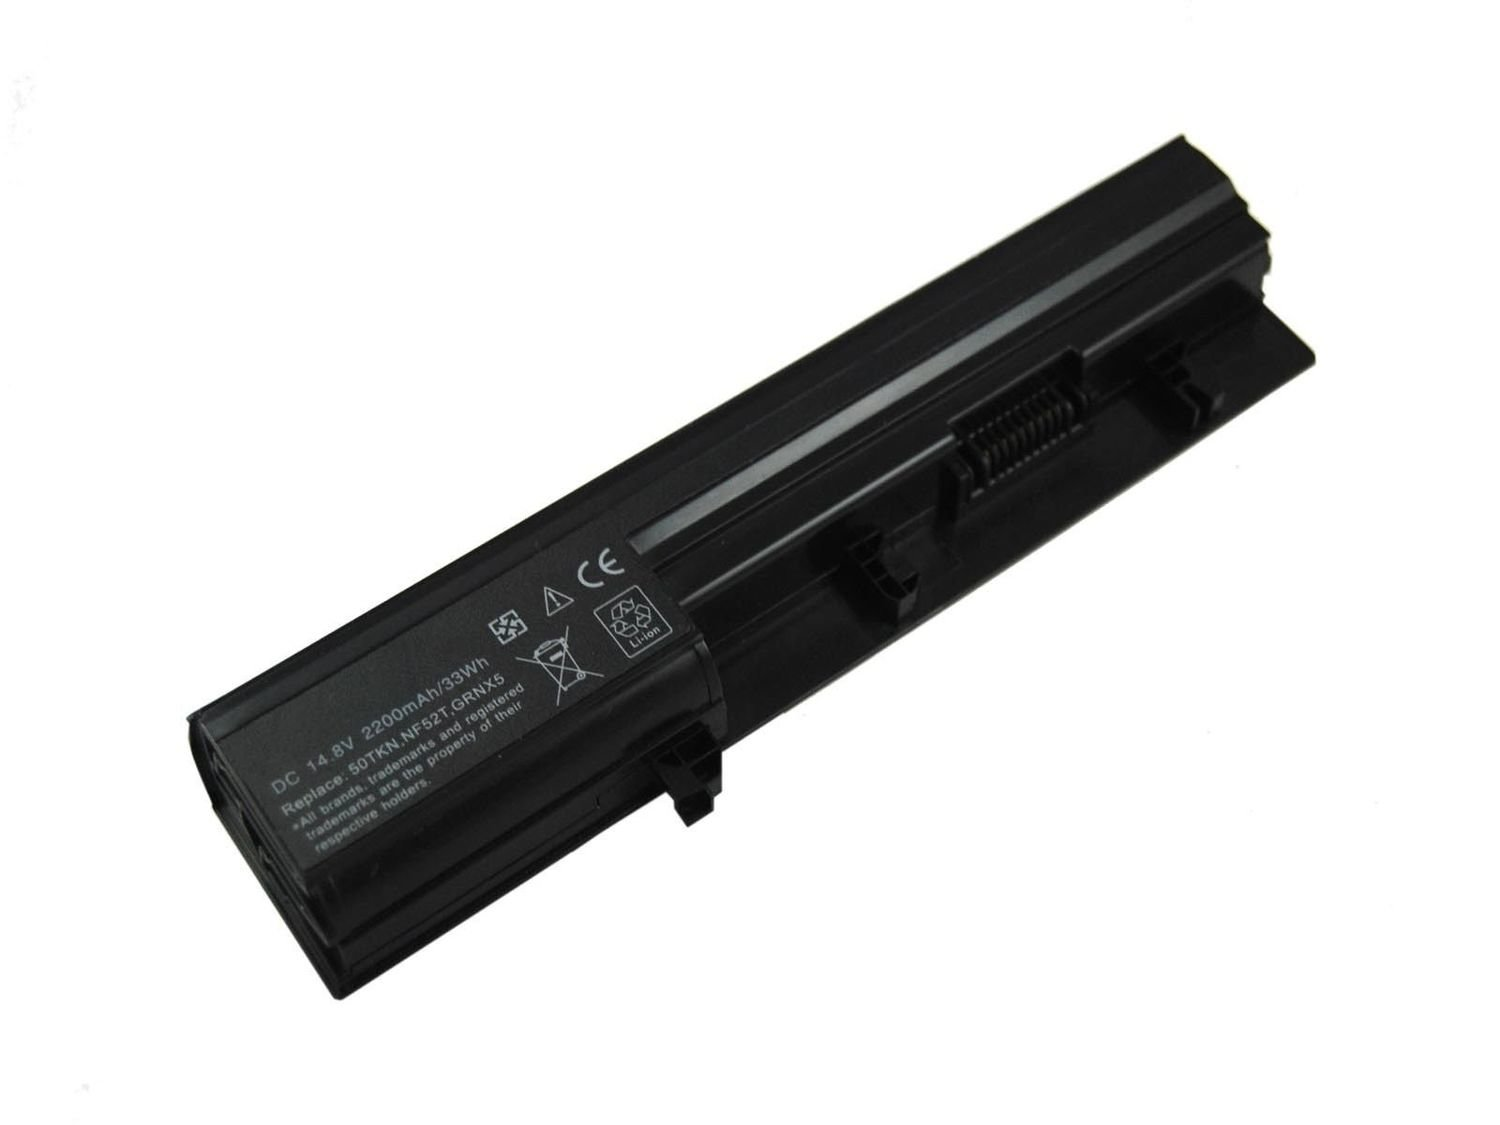 Dell vostro 3300 3350 series Compatible laptop battery